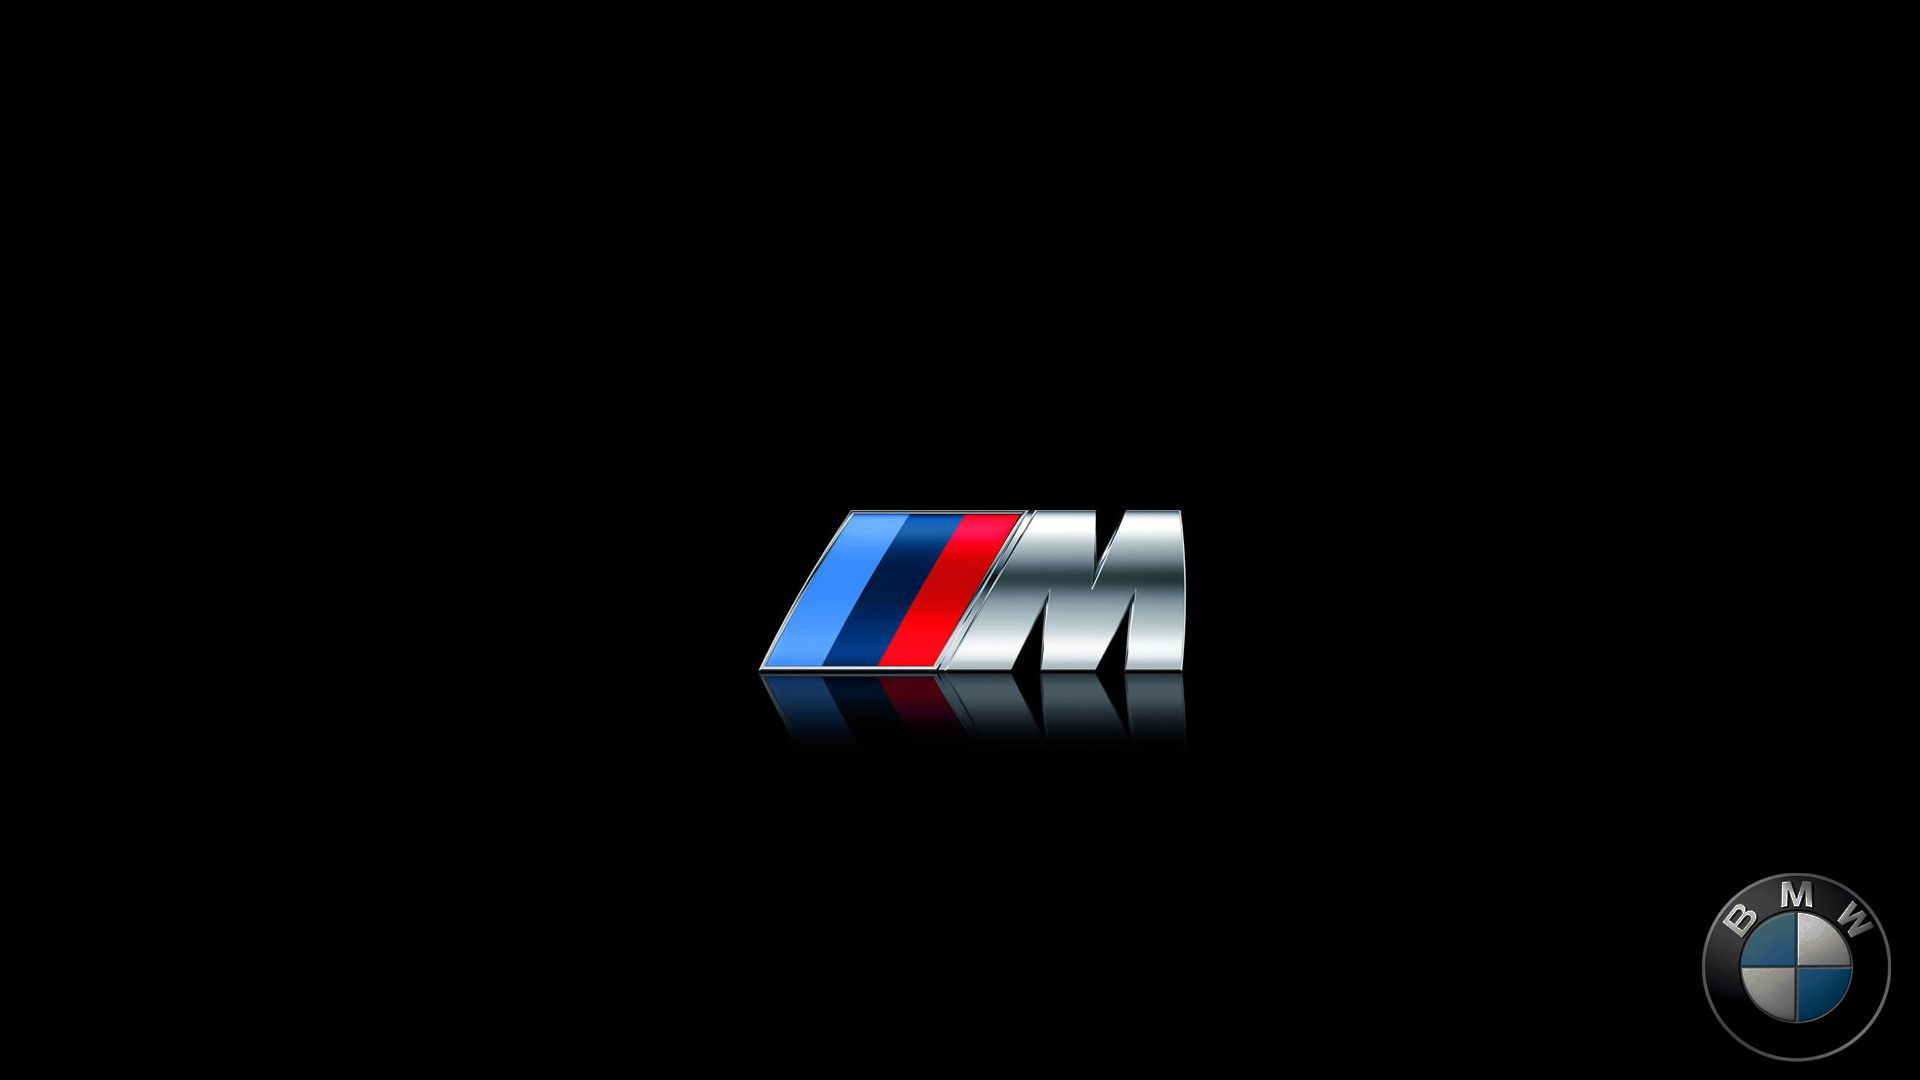 1920x1080 BMW M HD Wallpaper (57+ images)